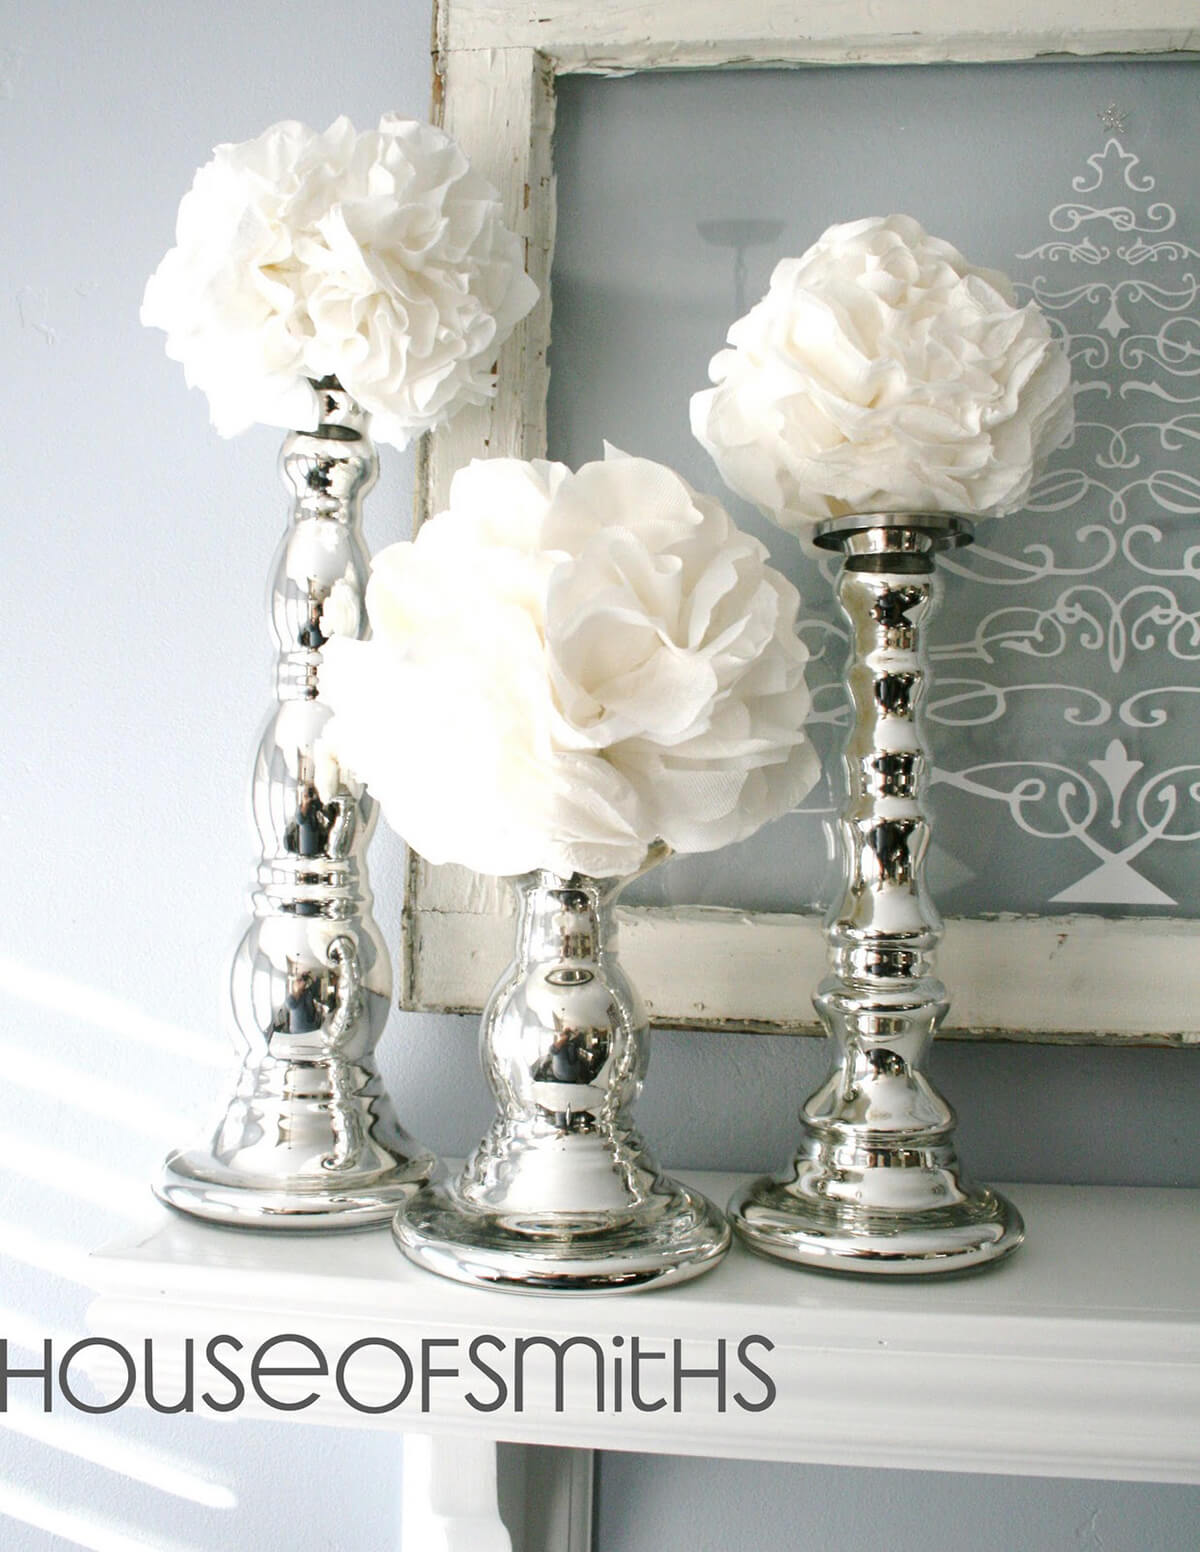 White Flowers Blossoming from Silver Candlesticks